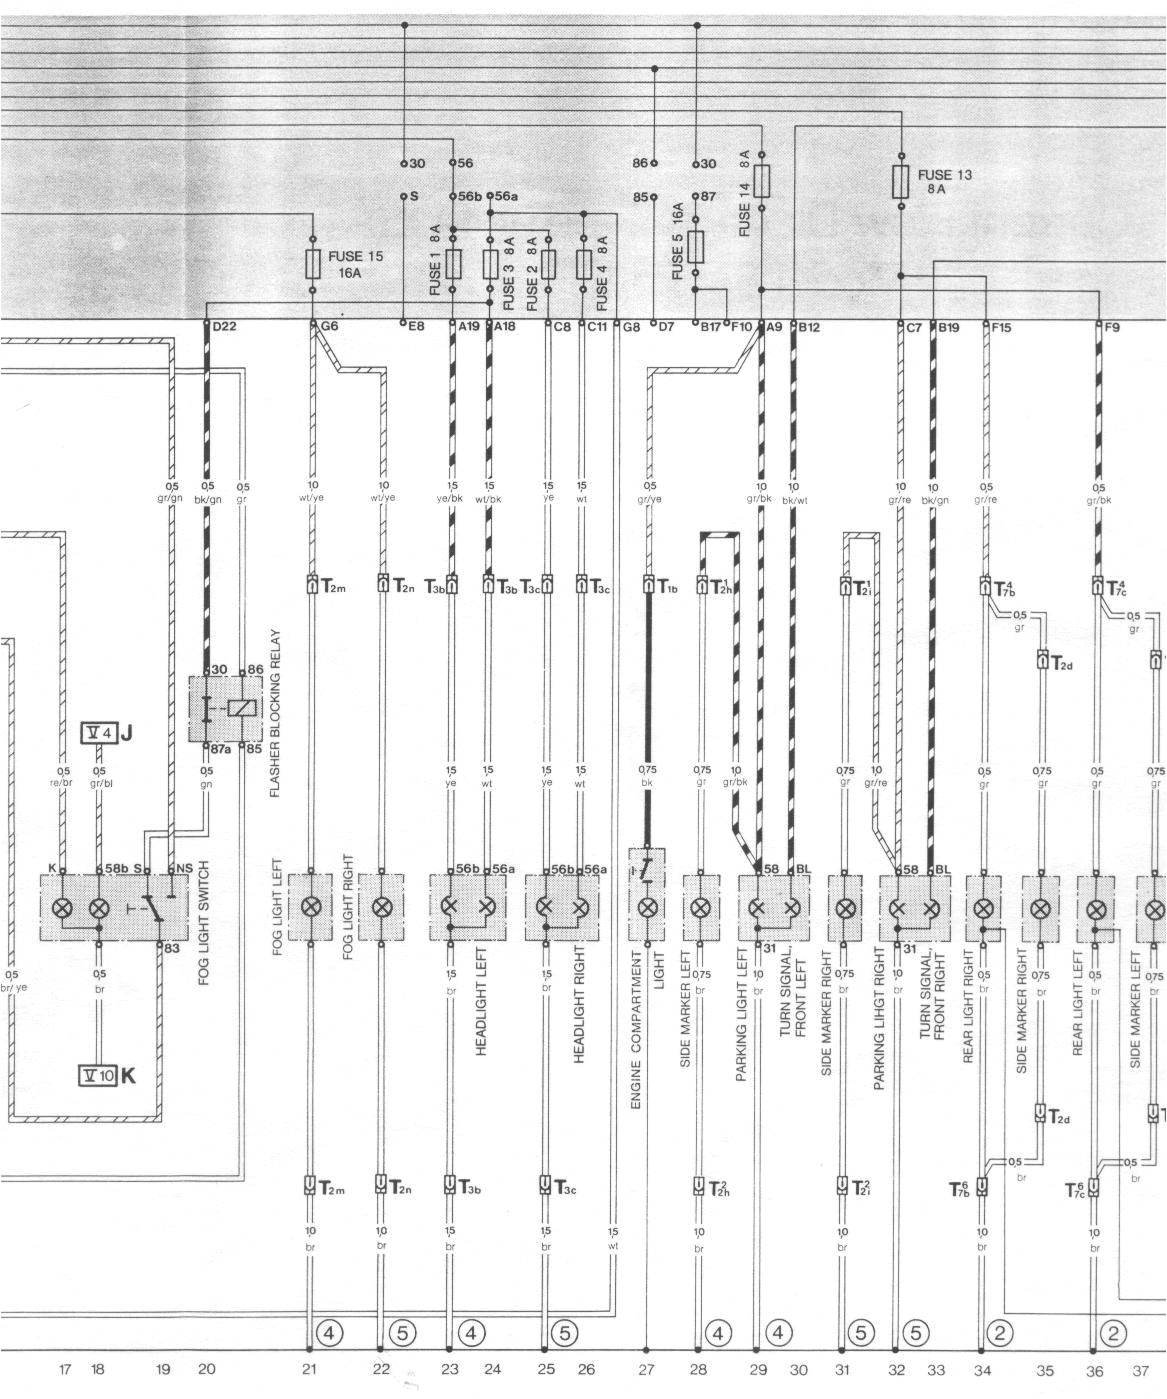 1986 Porsche 944 Wiring Diagram